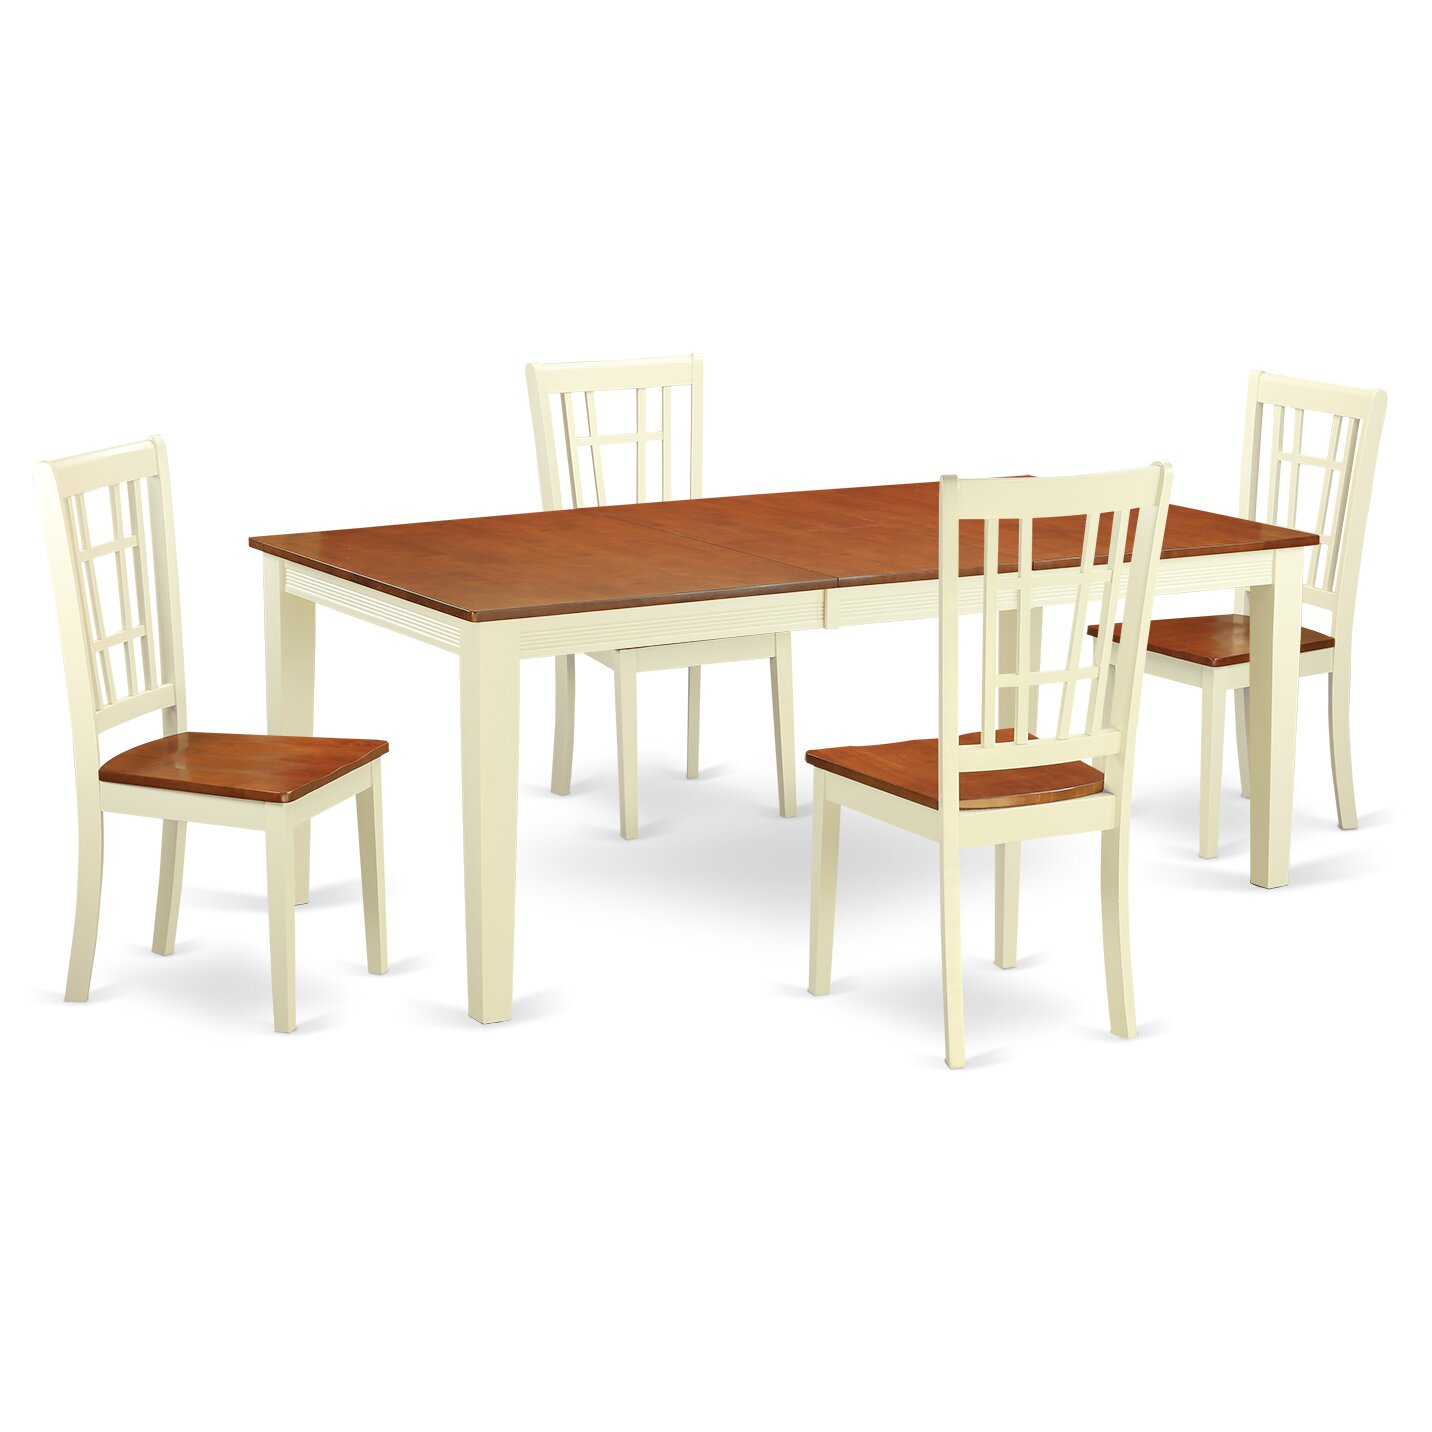 East west quincy 5 piece dining set wayfair for Kitchen table and stools set